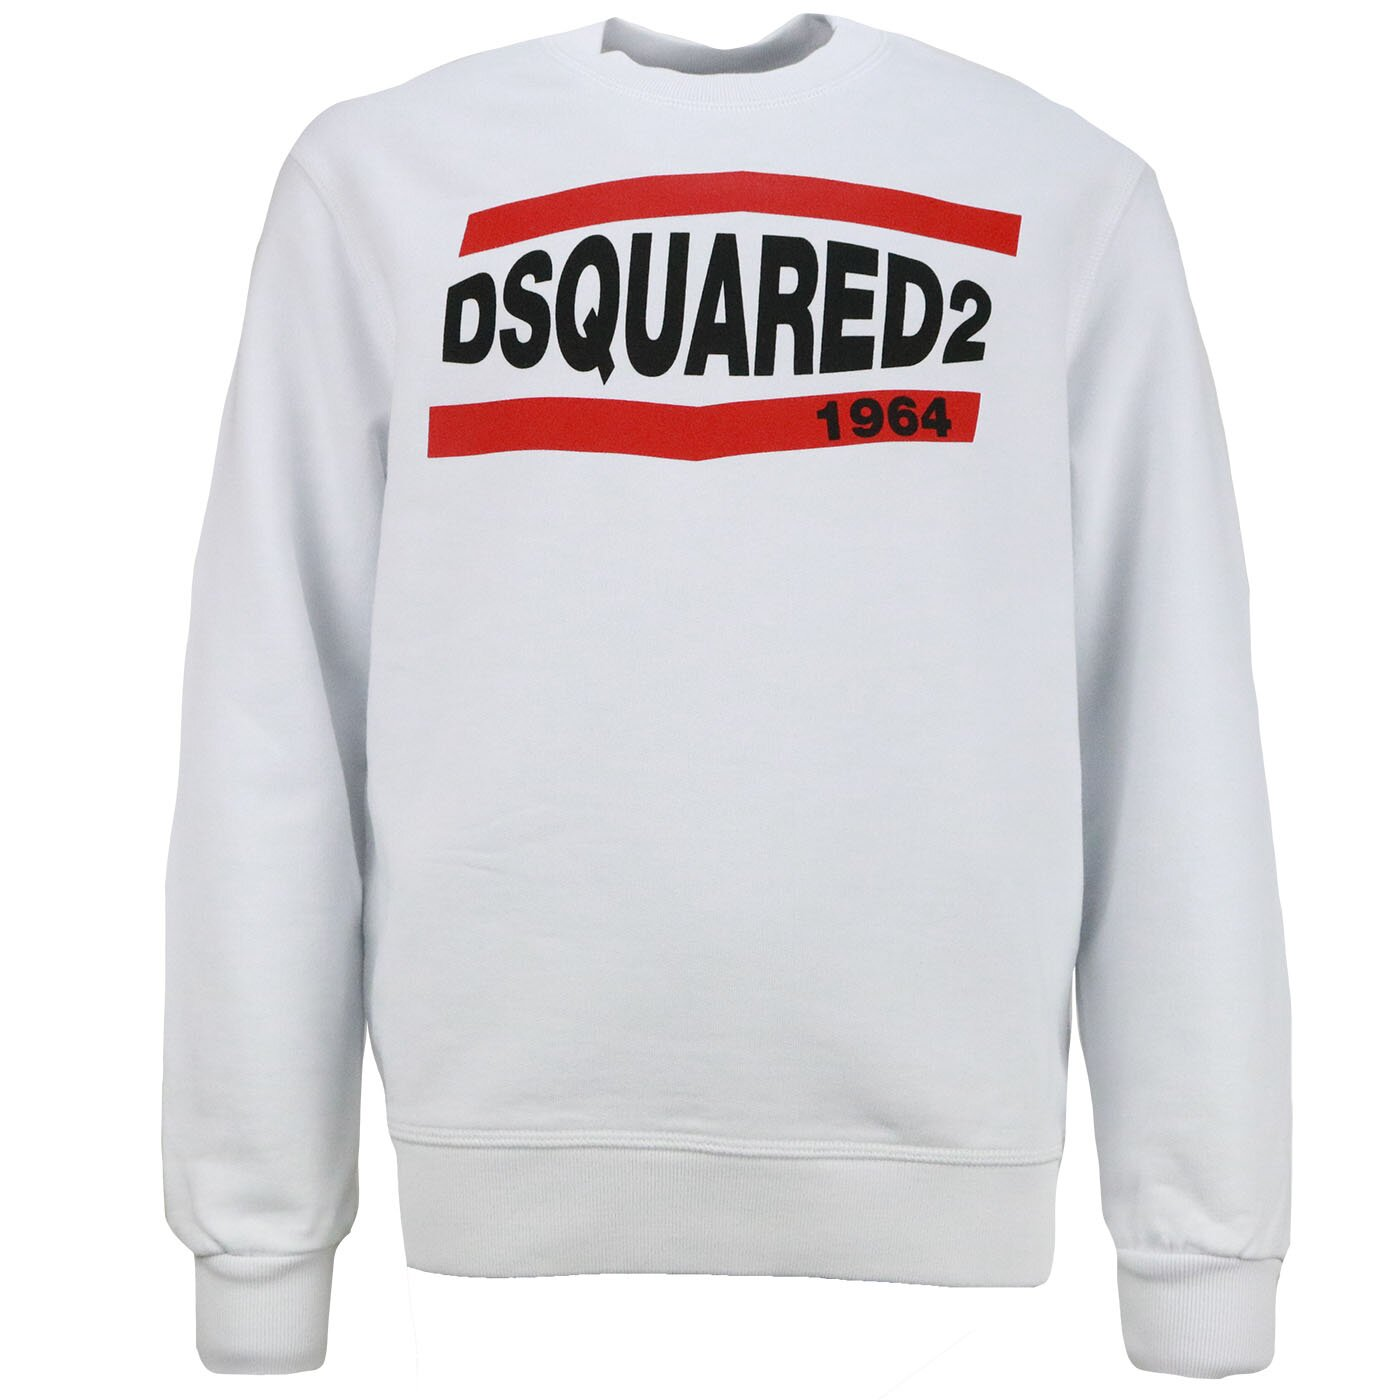 Dsquared2 Sweater 1964 Wit relax fit